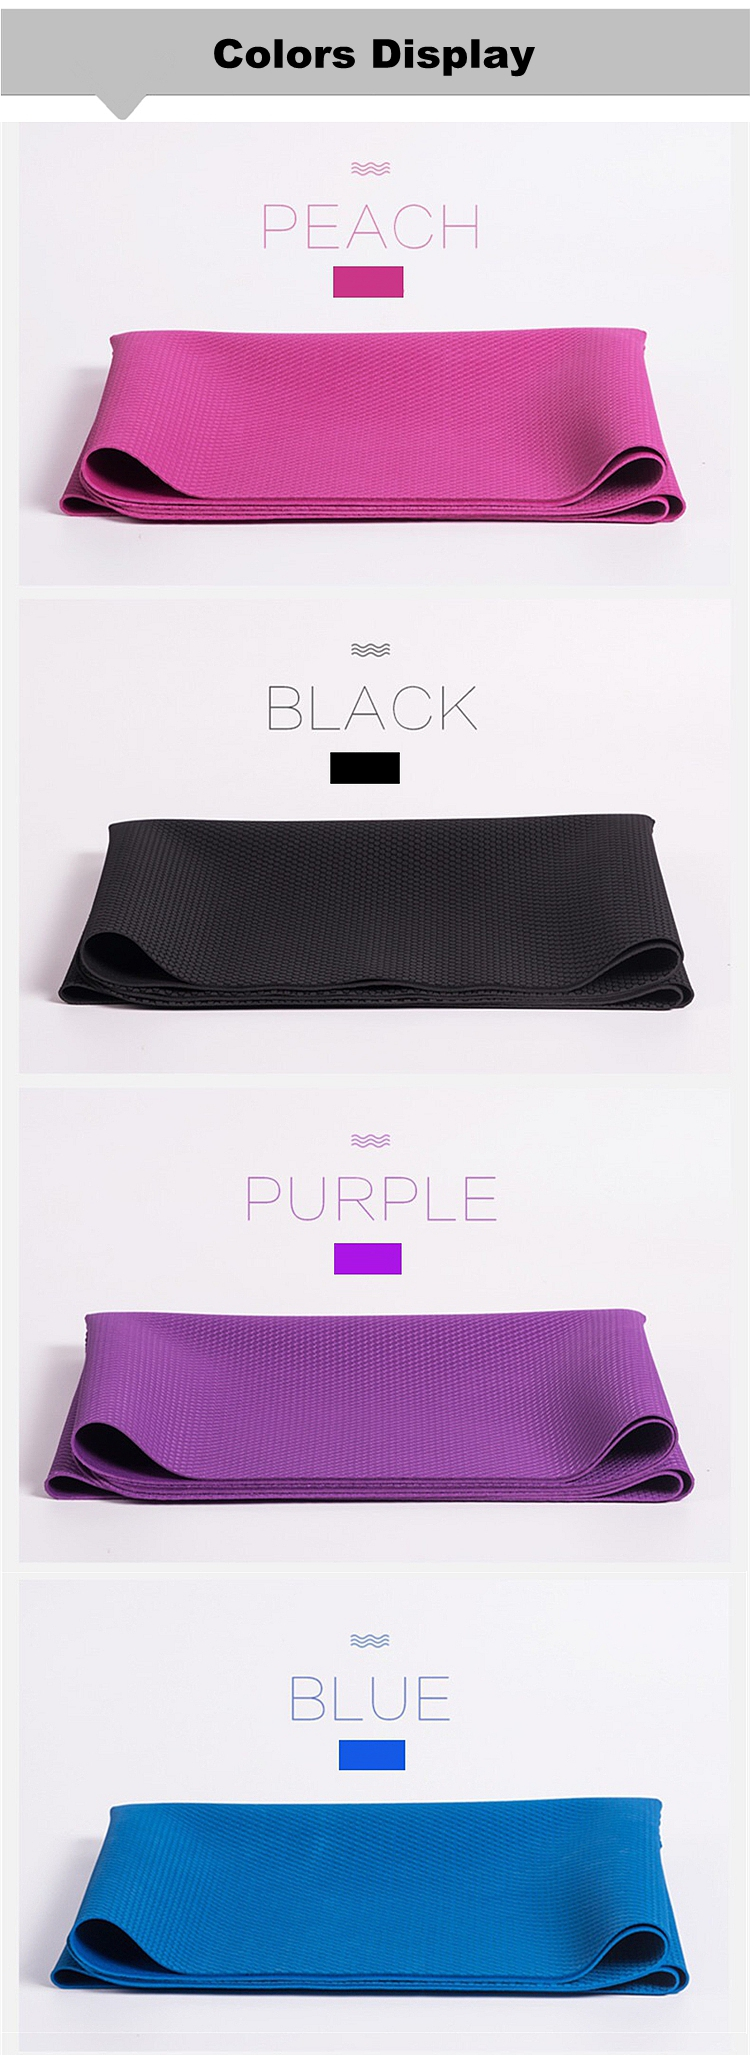 Perfectly thick 1.5mm portable yoga mat rubber